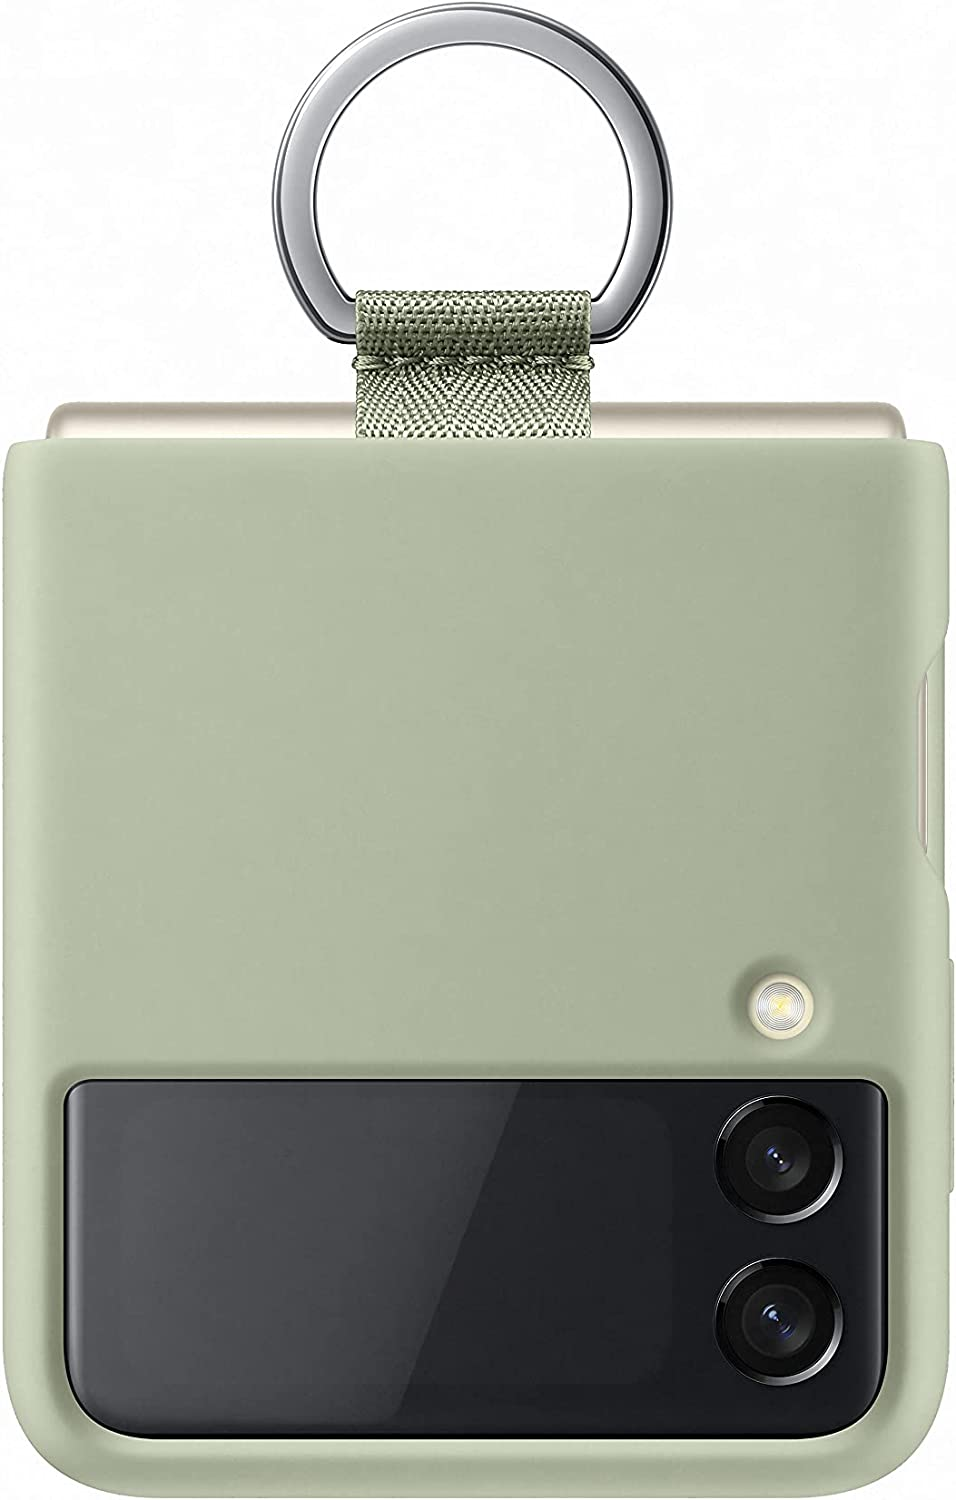 Samsung Galaxy Z Flip 3 Phone Case, Silicone Protective Cover with Strap, Heavy Duty, Shockproof Smartphone Protector, (Olive Green)